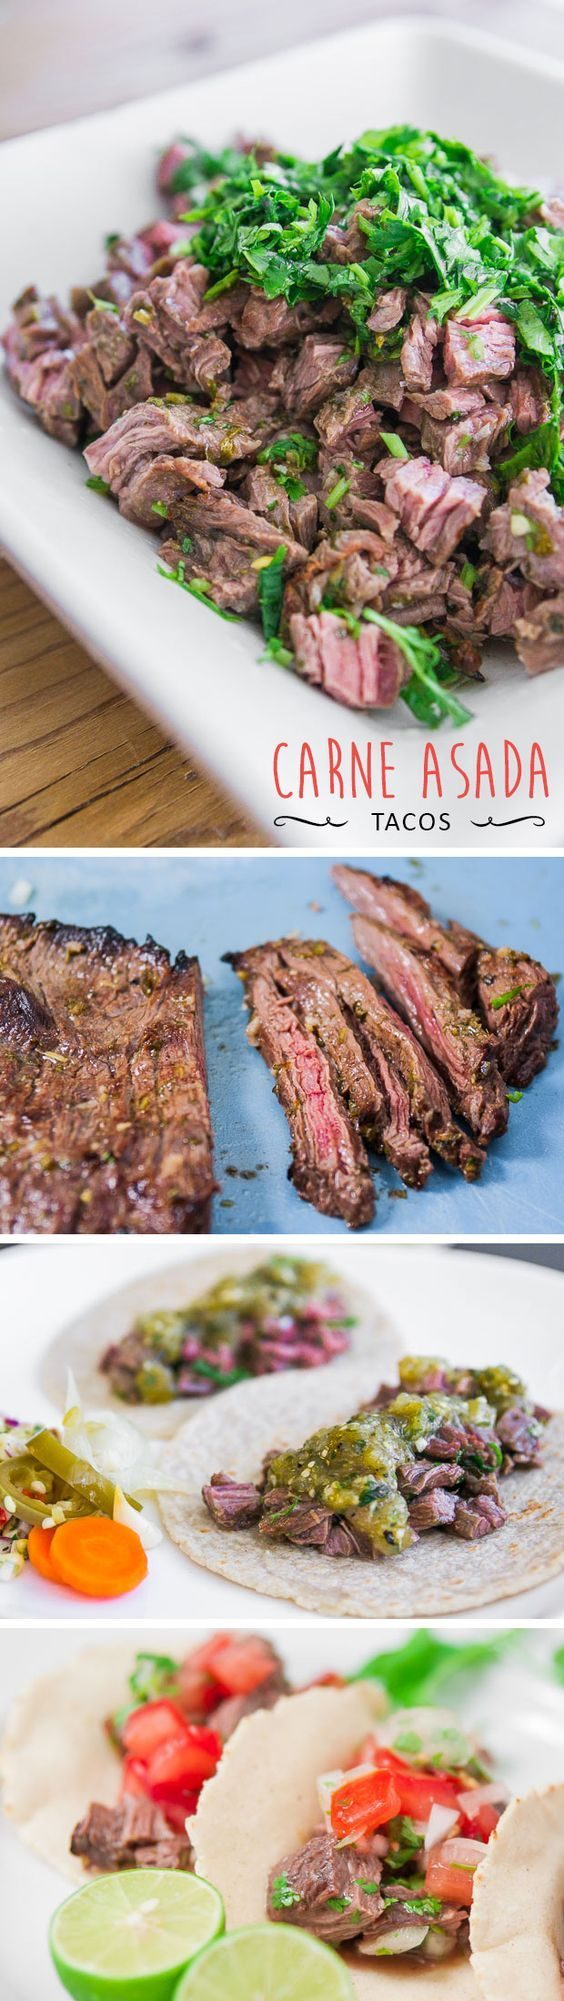 Grilled skirt steak marinated in lime juice and spices. How to make a delicious Carne Asada.